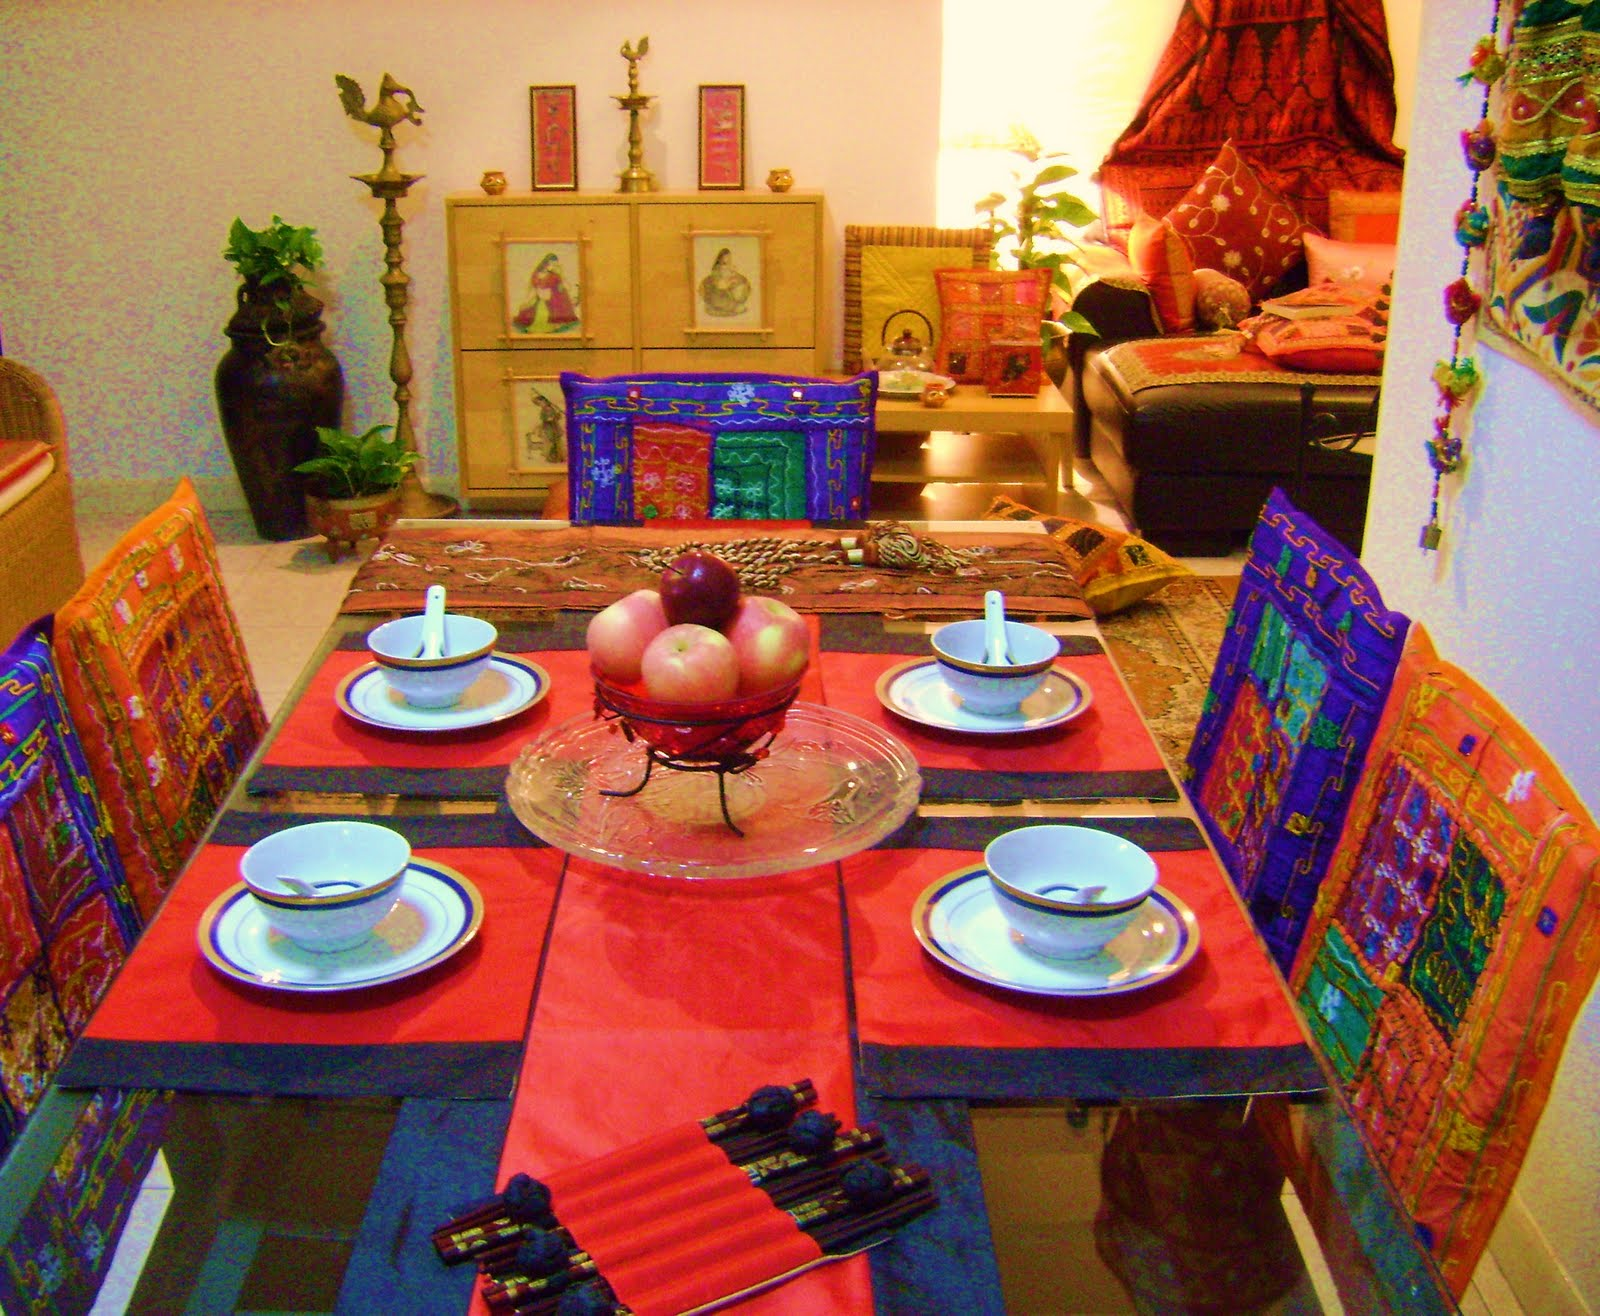 dining room chair cushion covers fancy folding chairs ethnic indian decor: an home in singapore